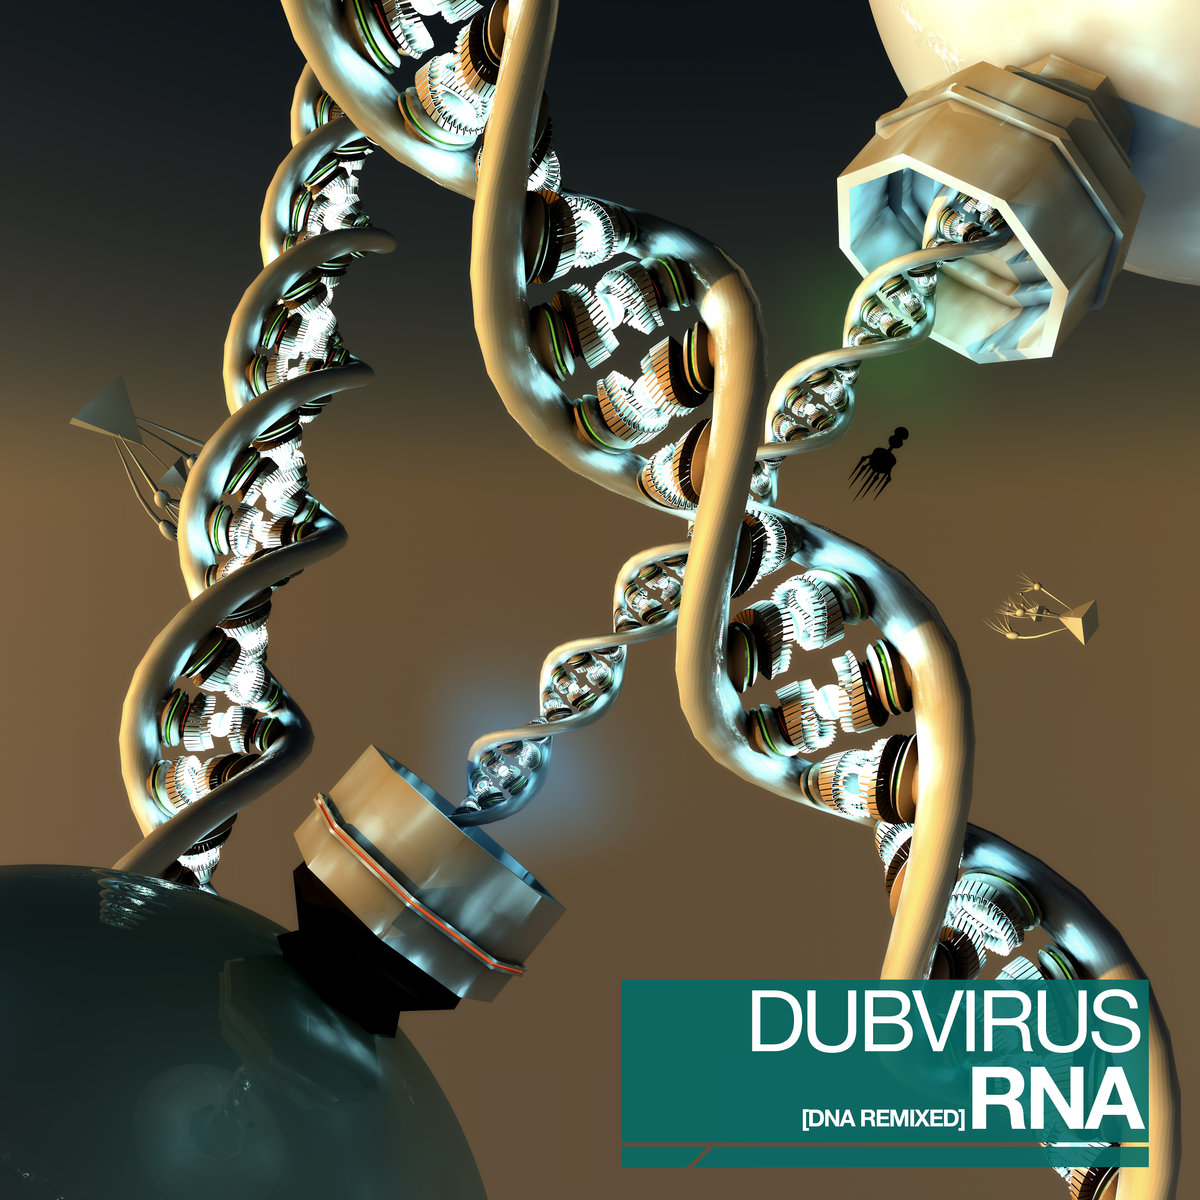 Dubvirus - Rising Sign (Cloud-D Remix) @ 'RNA (DNA Remixed)' album (bass, dubvirus)